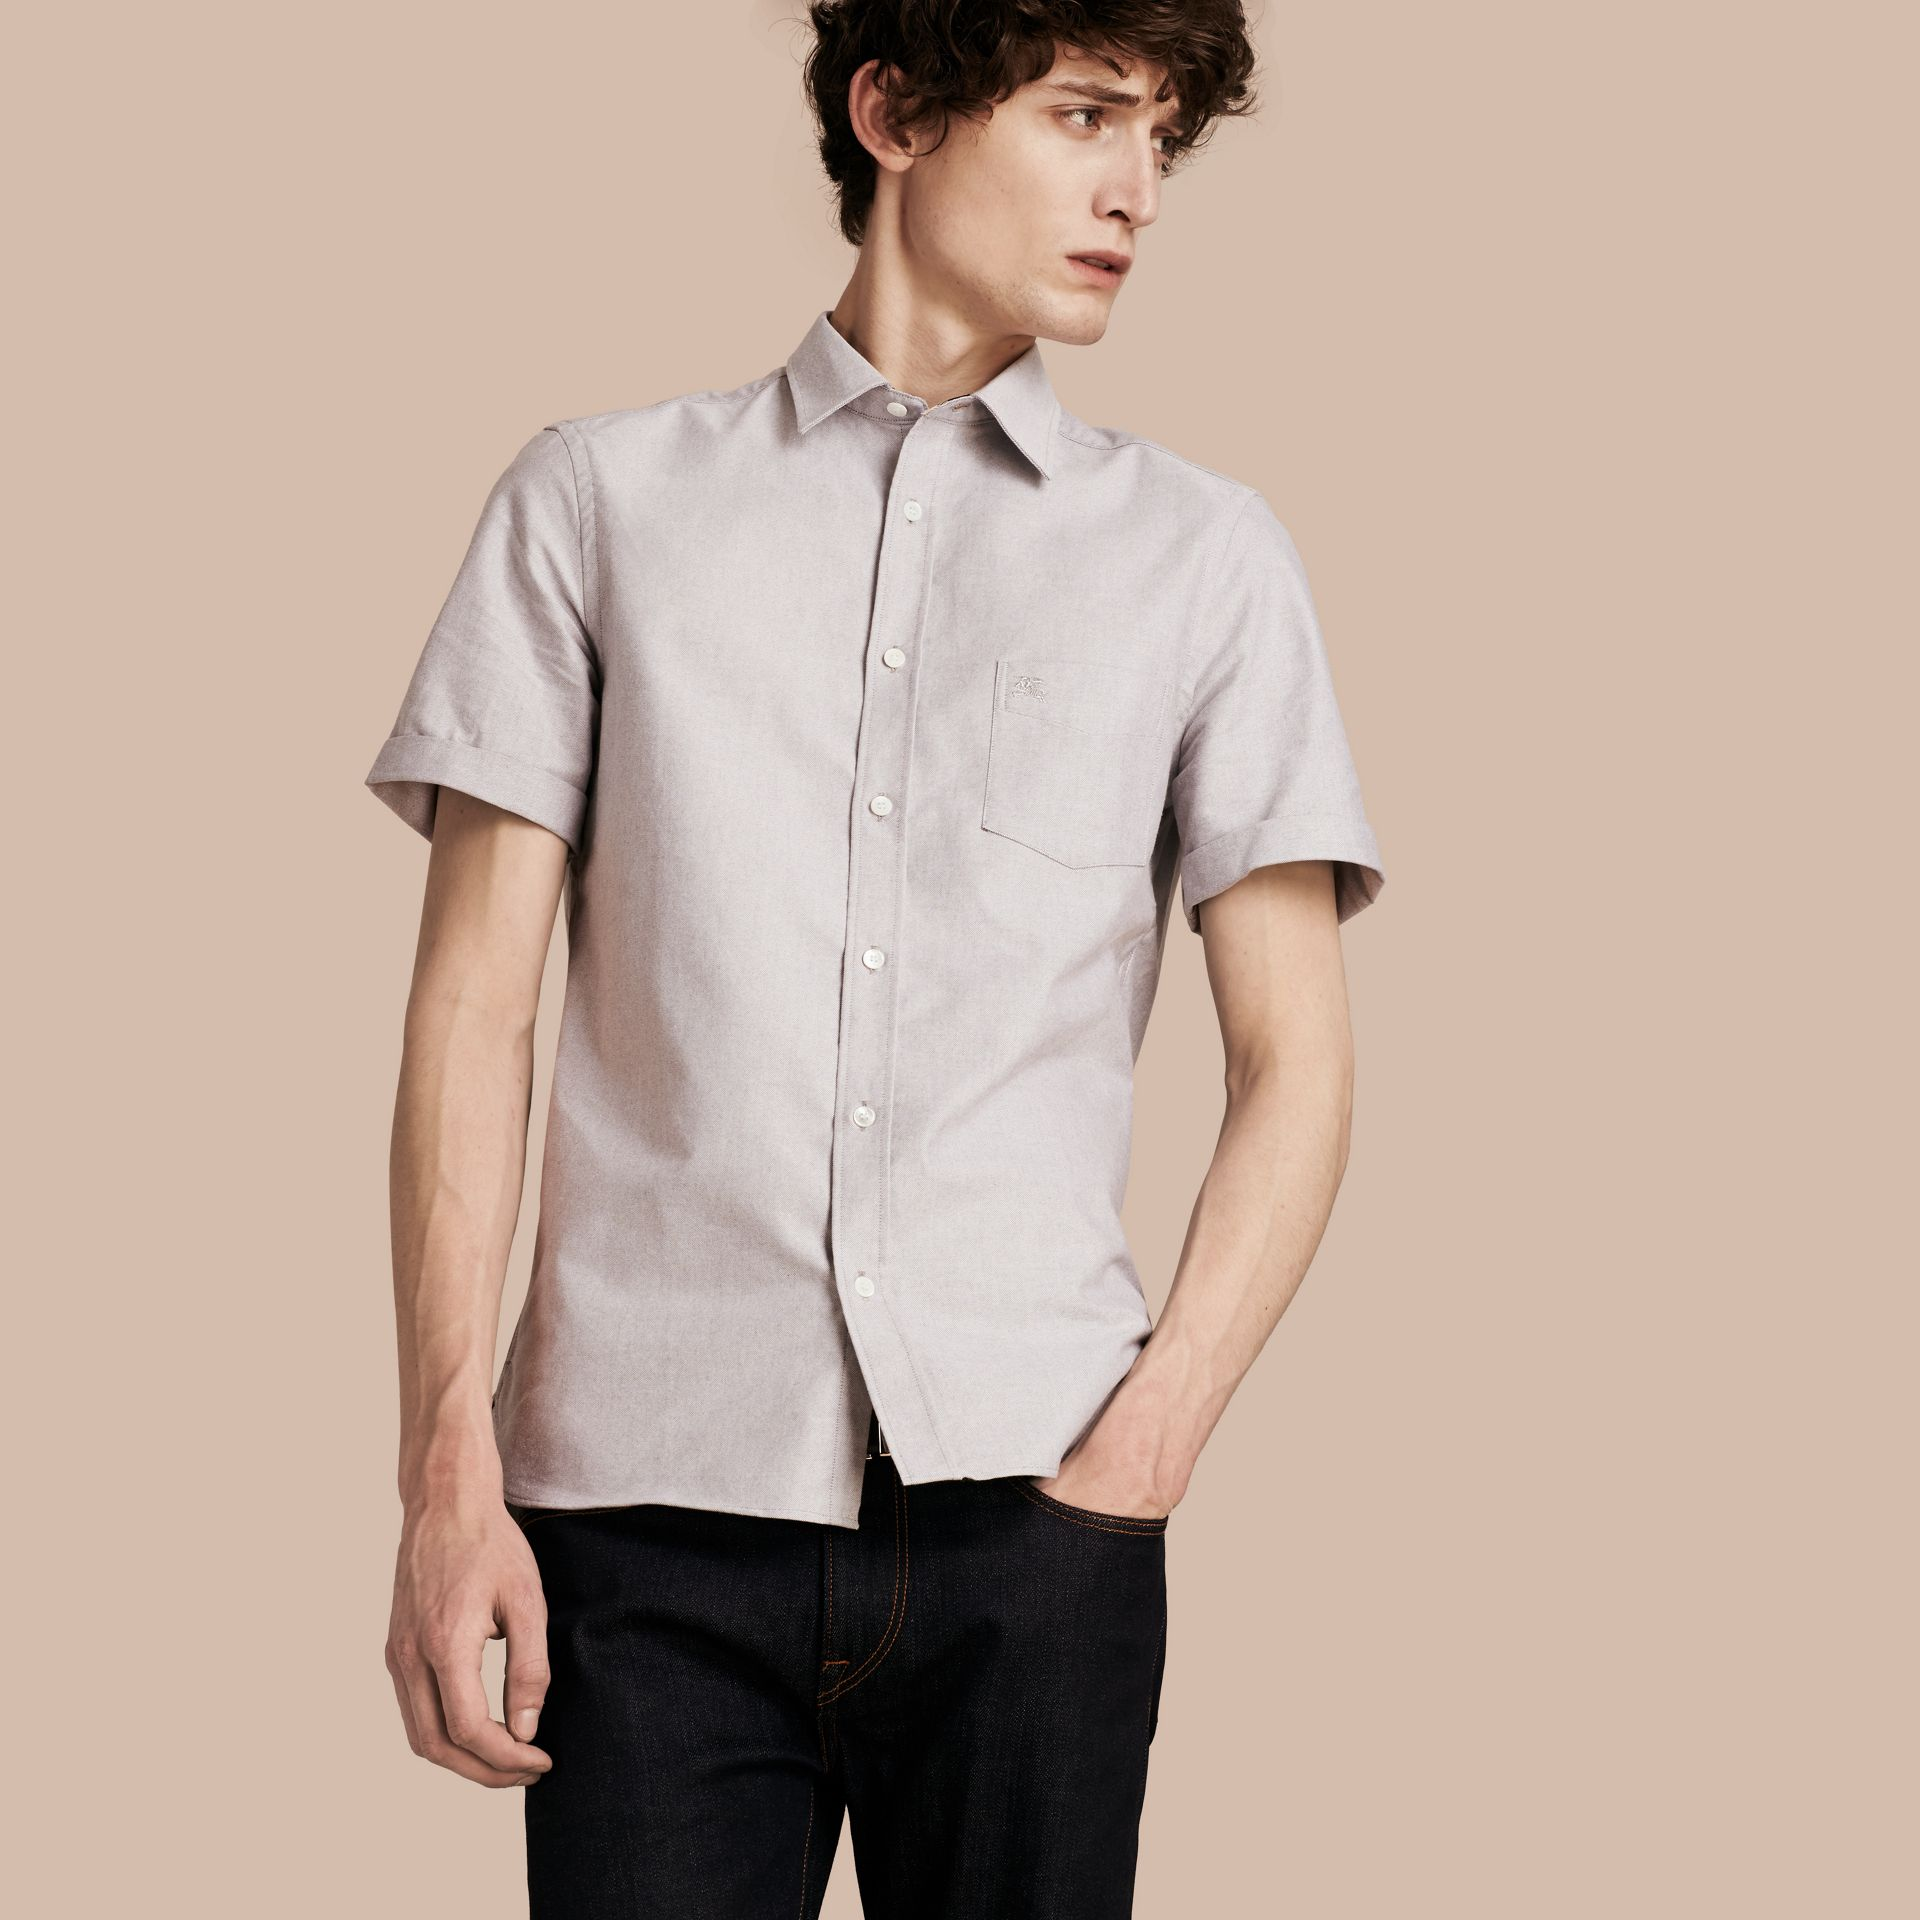 Charcoal Check Detail Short-Sleeved Cotton Oxford Shirt - gallery image 1